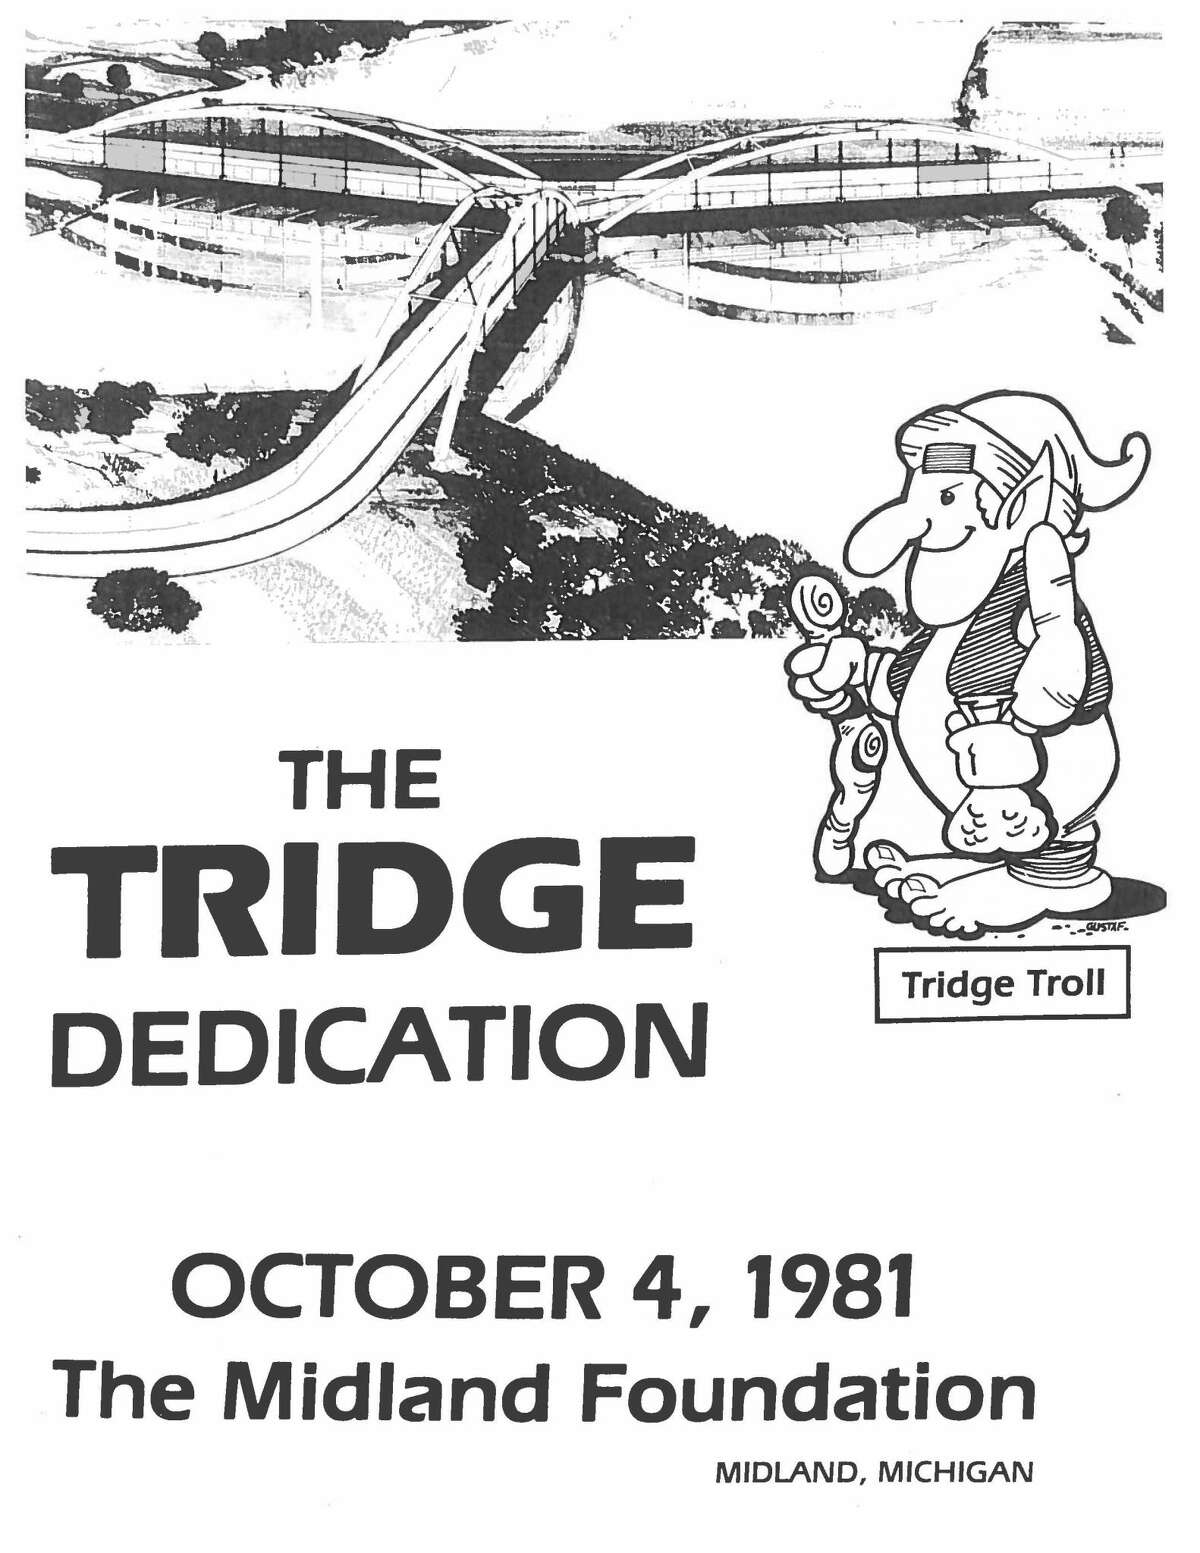 Pictured is a brochure for the Midland Tridge's dedication ceremony on Oct. 4, 1981.